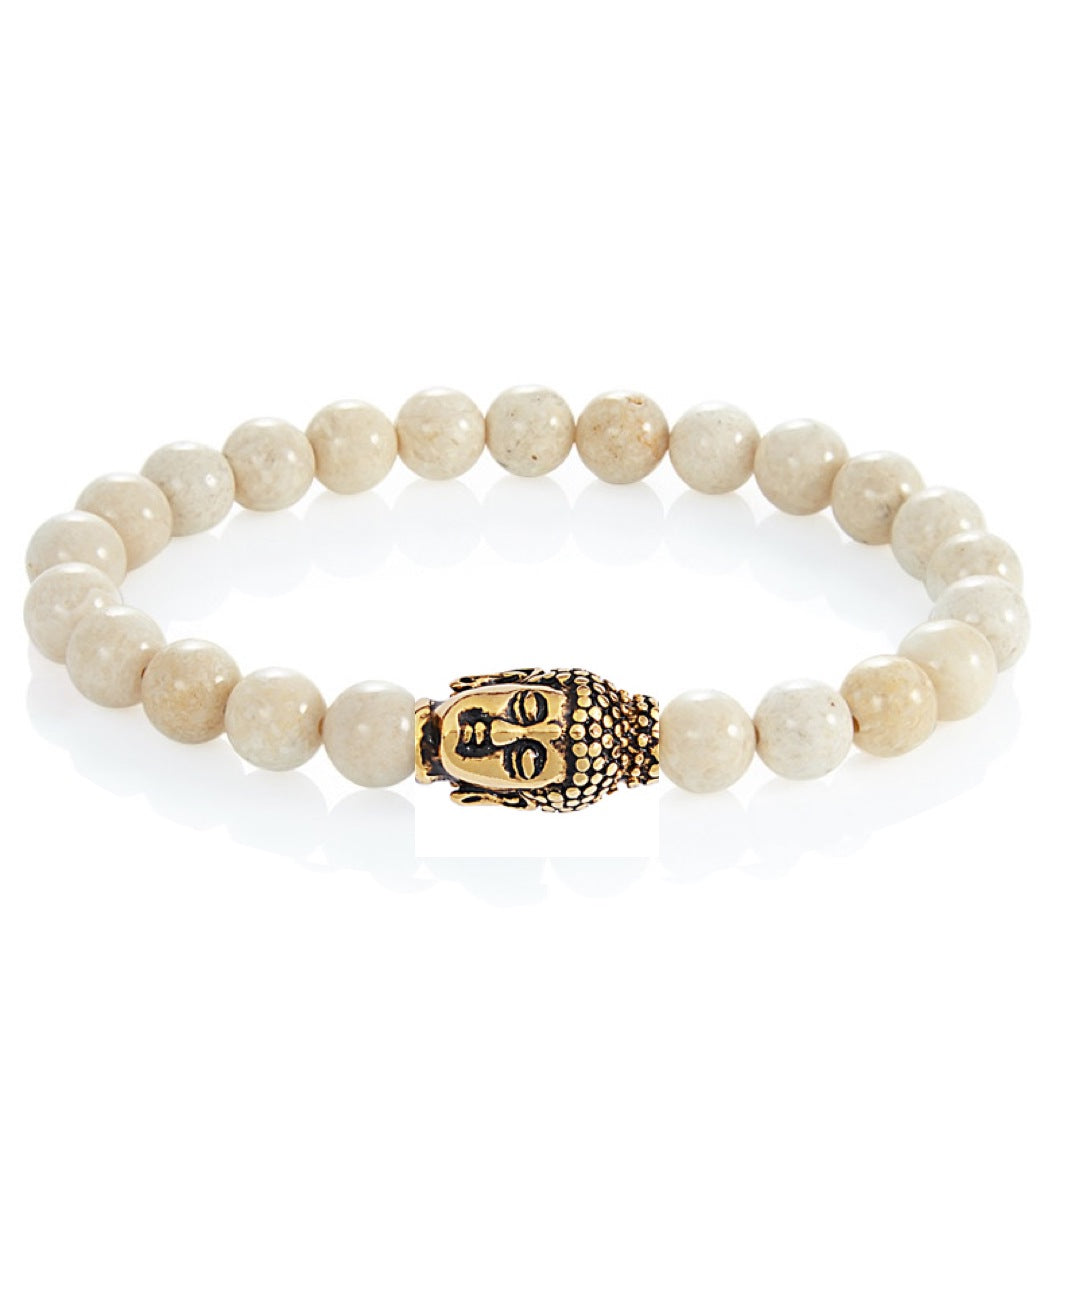 18k Gold Riverstone Carved Buddha Bracelet